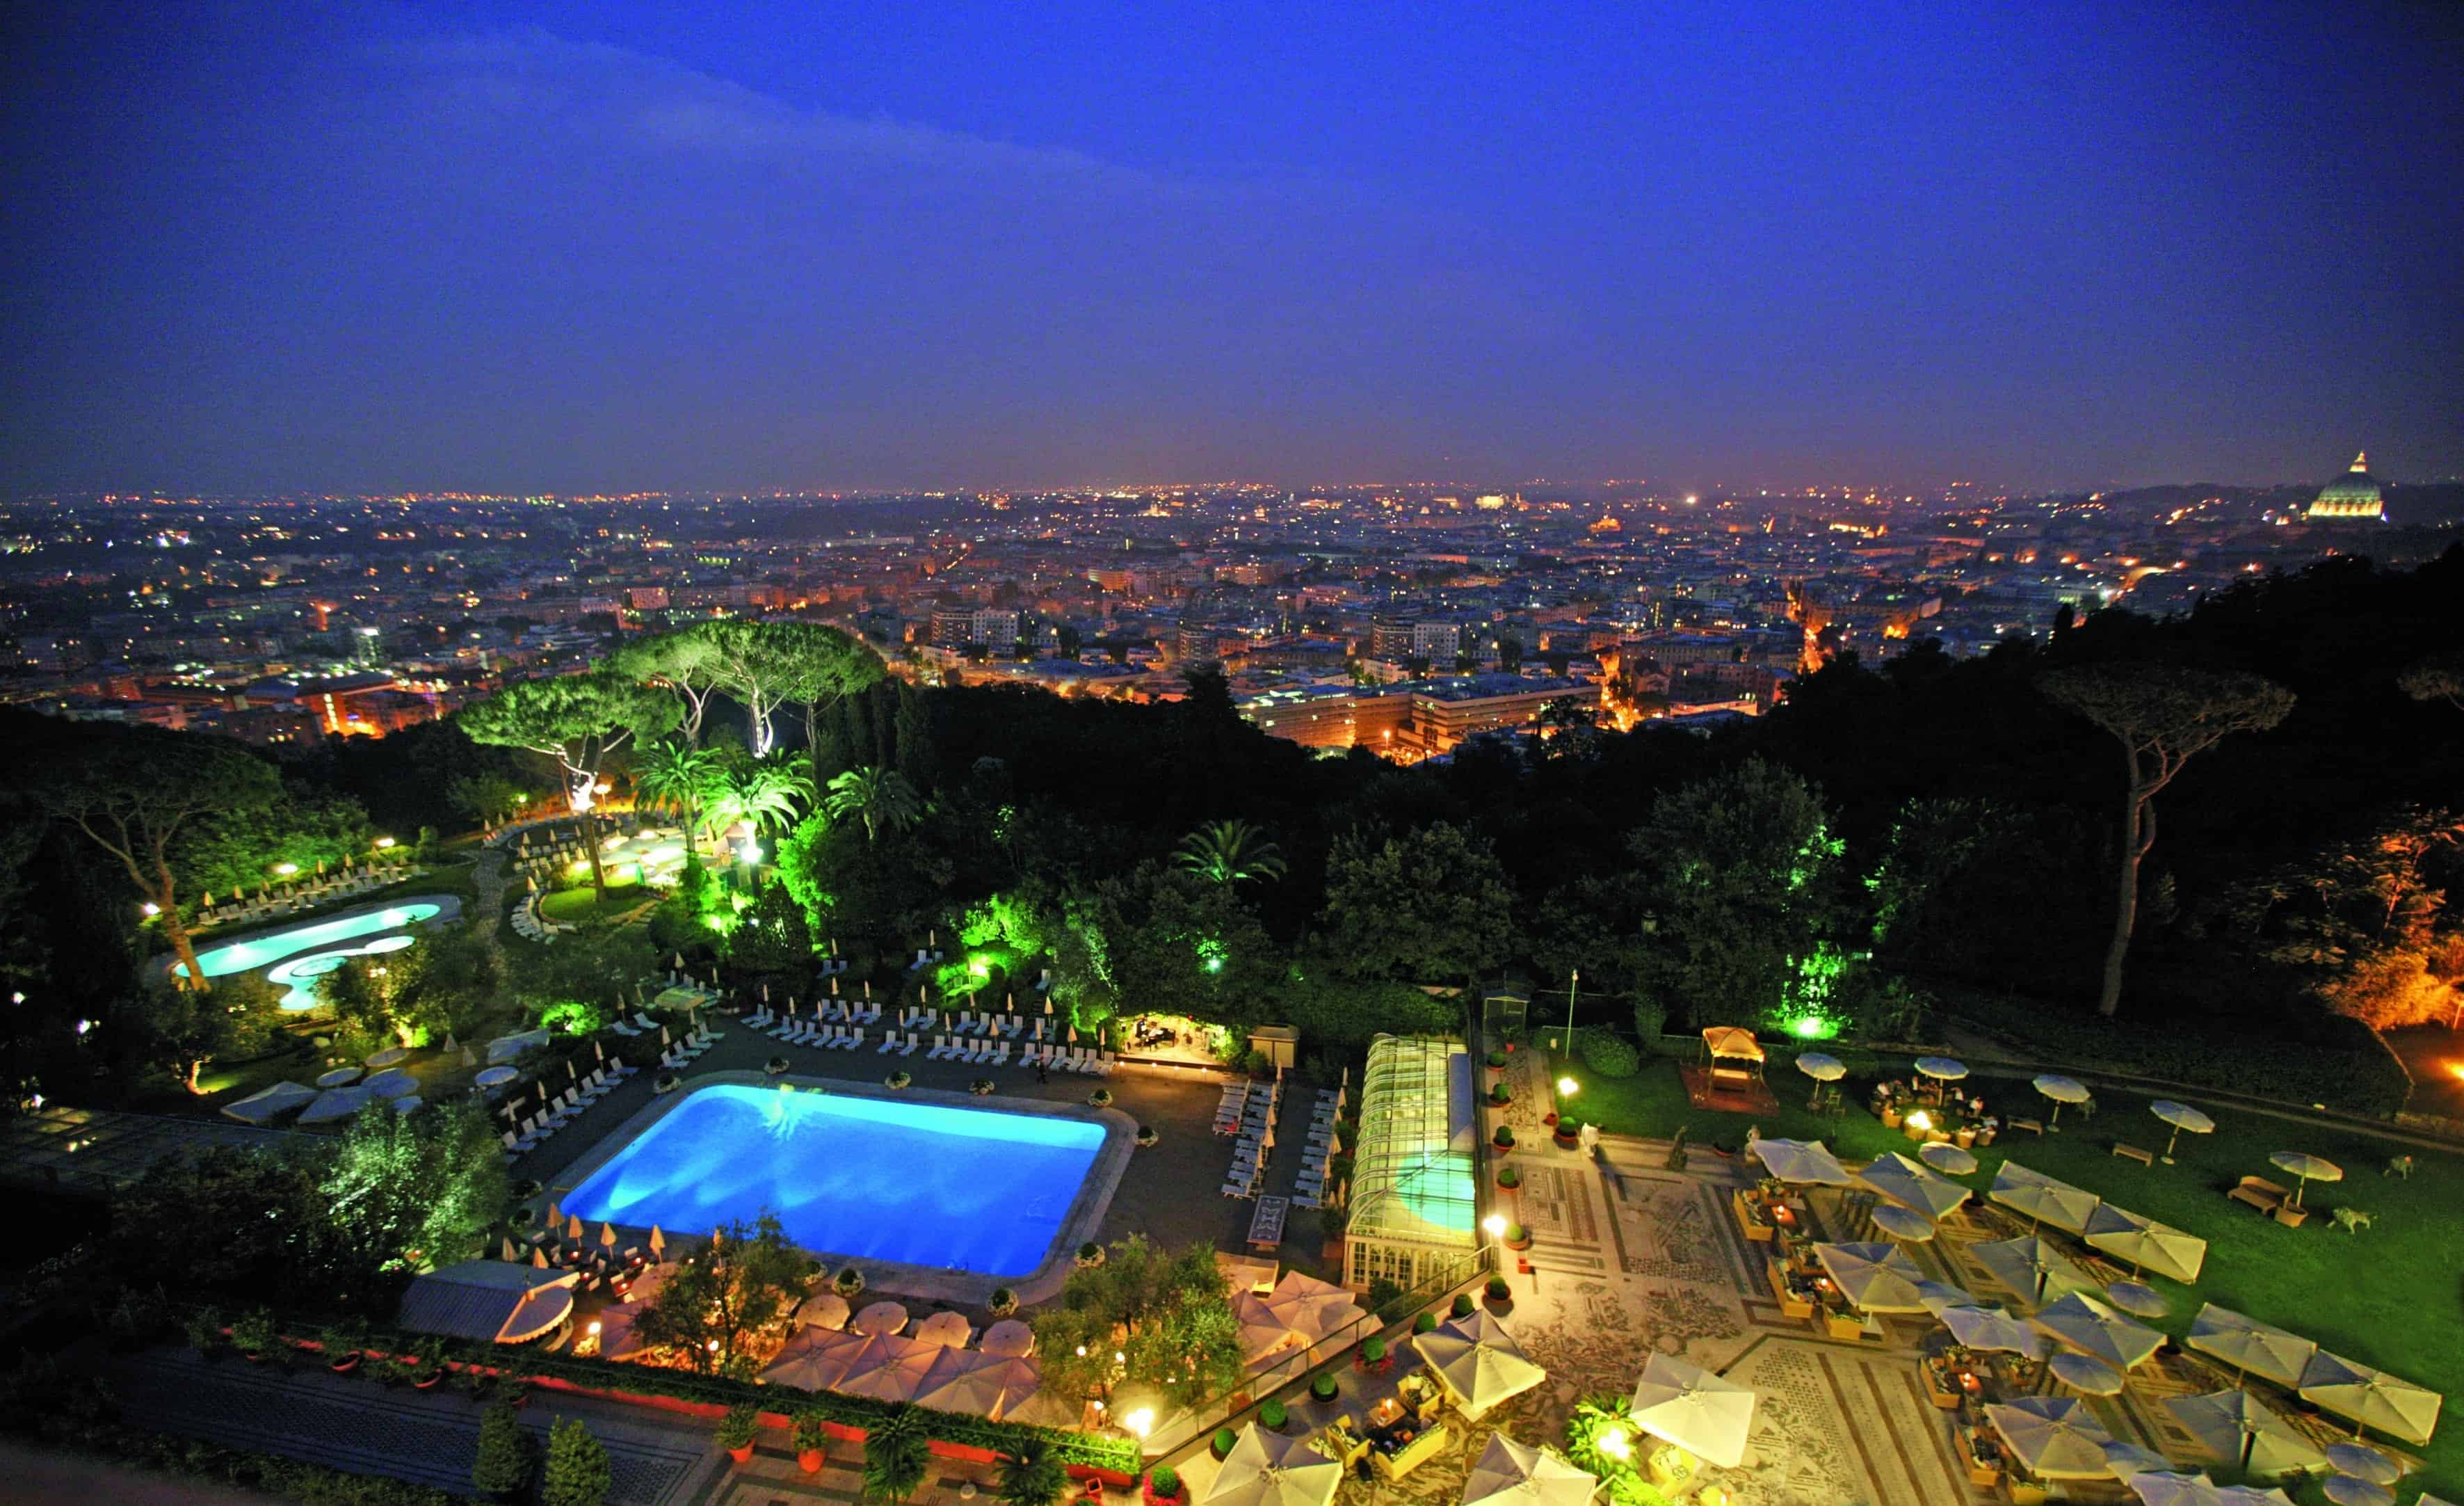 Migliore Hotel Spa Italia è Il Grand Spa Club del  Rome Cavalieri, parola di Travel + Leisure